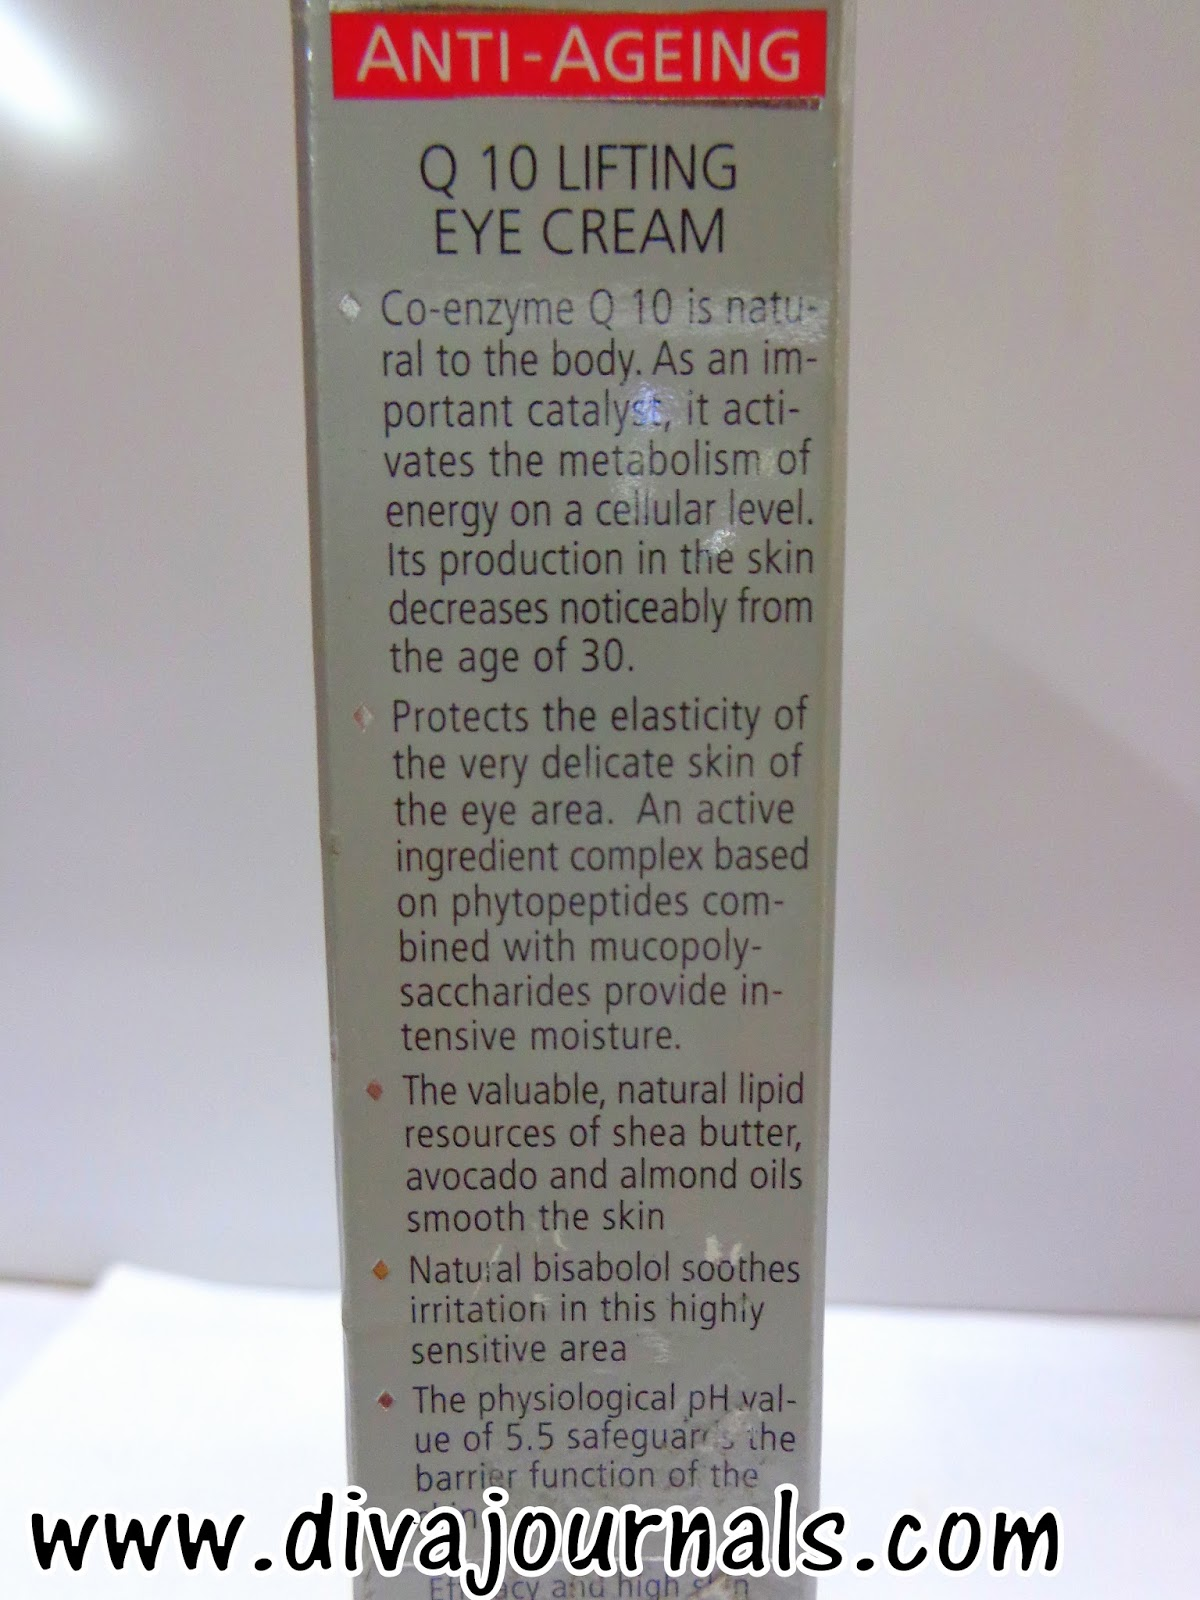 Sebamed Anti-Aging Q10 Lifting Eye Cream Review